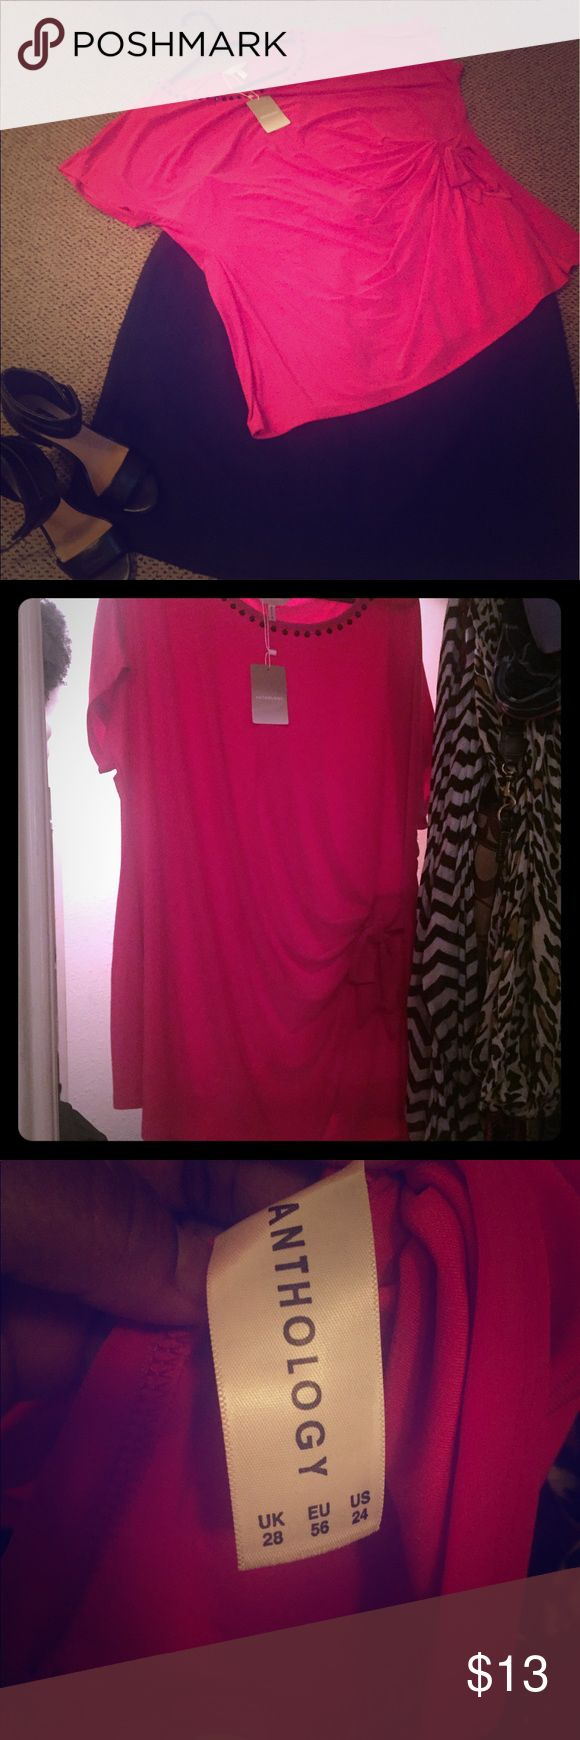 Cute hot pink blouse Hot pink blouse with black gems around the collar & a cinched bow on the left side. Shapely and cute. Stretchy. Size 24. Anthology Tops Blouses